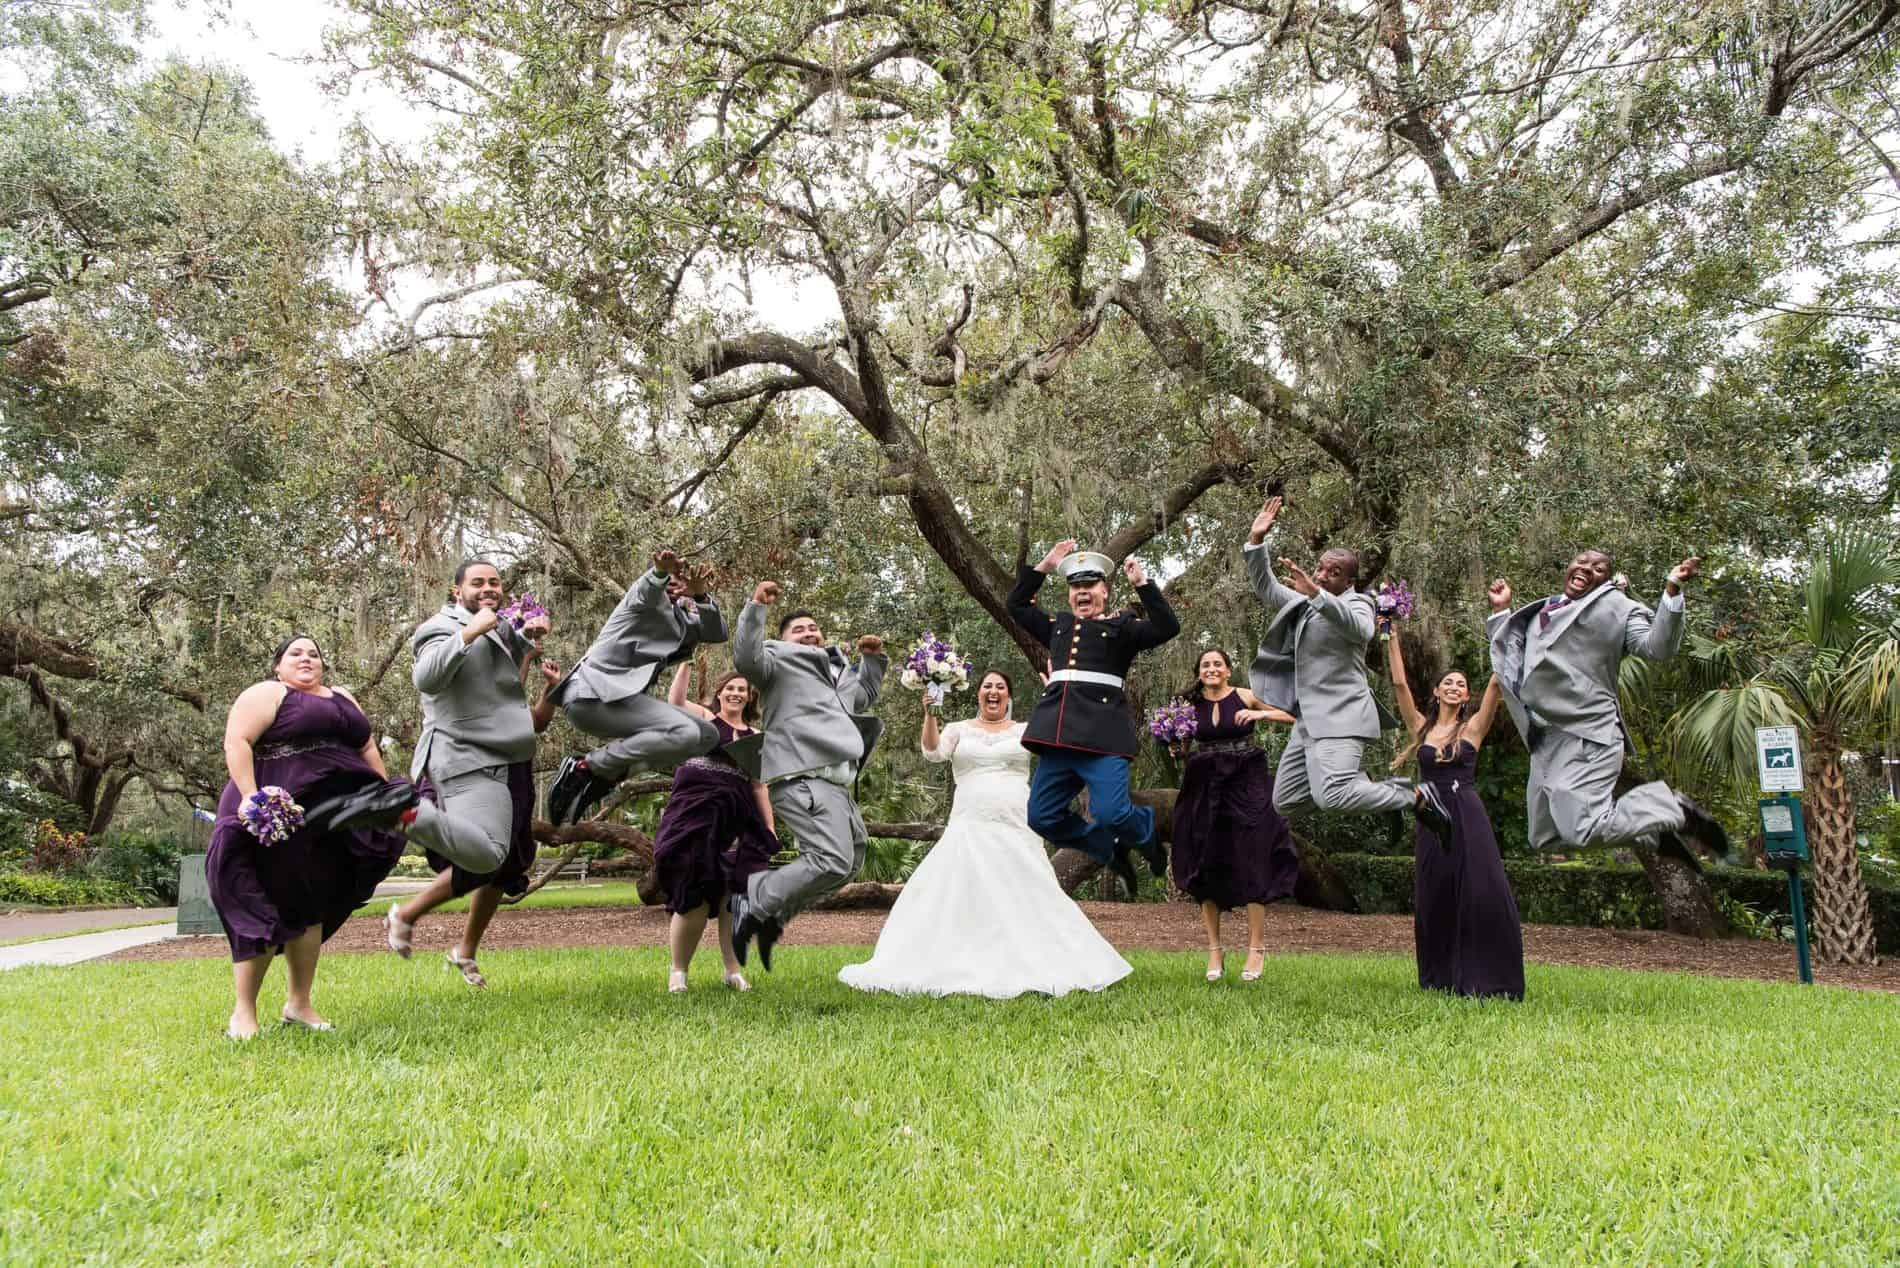 Pictures outdoors at Dickson Azalea Park